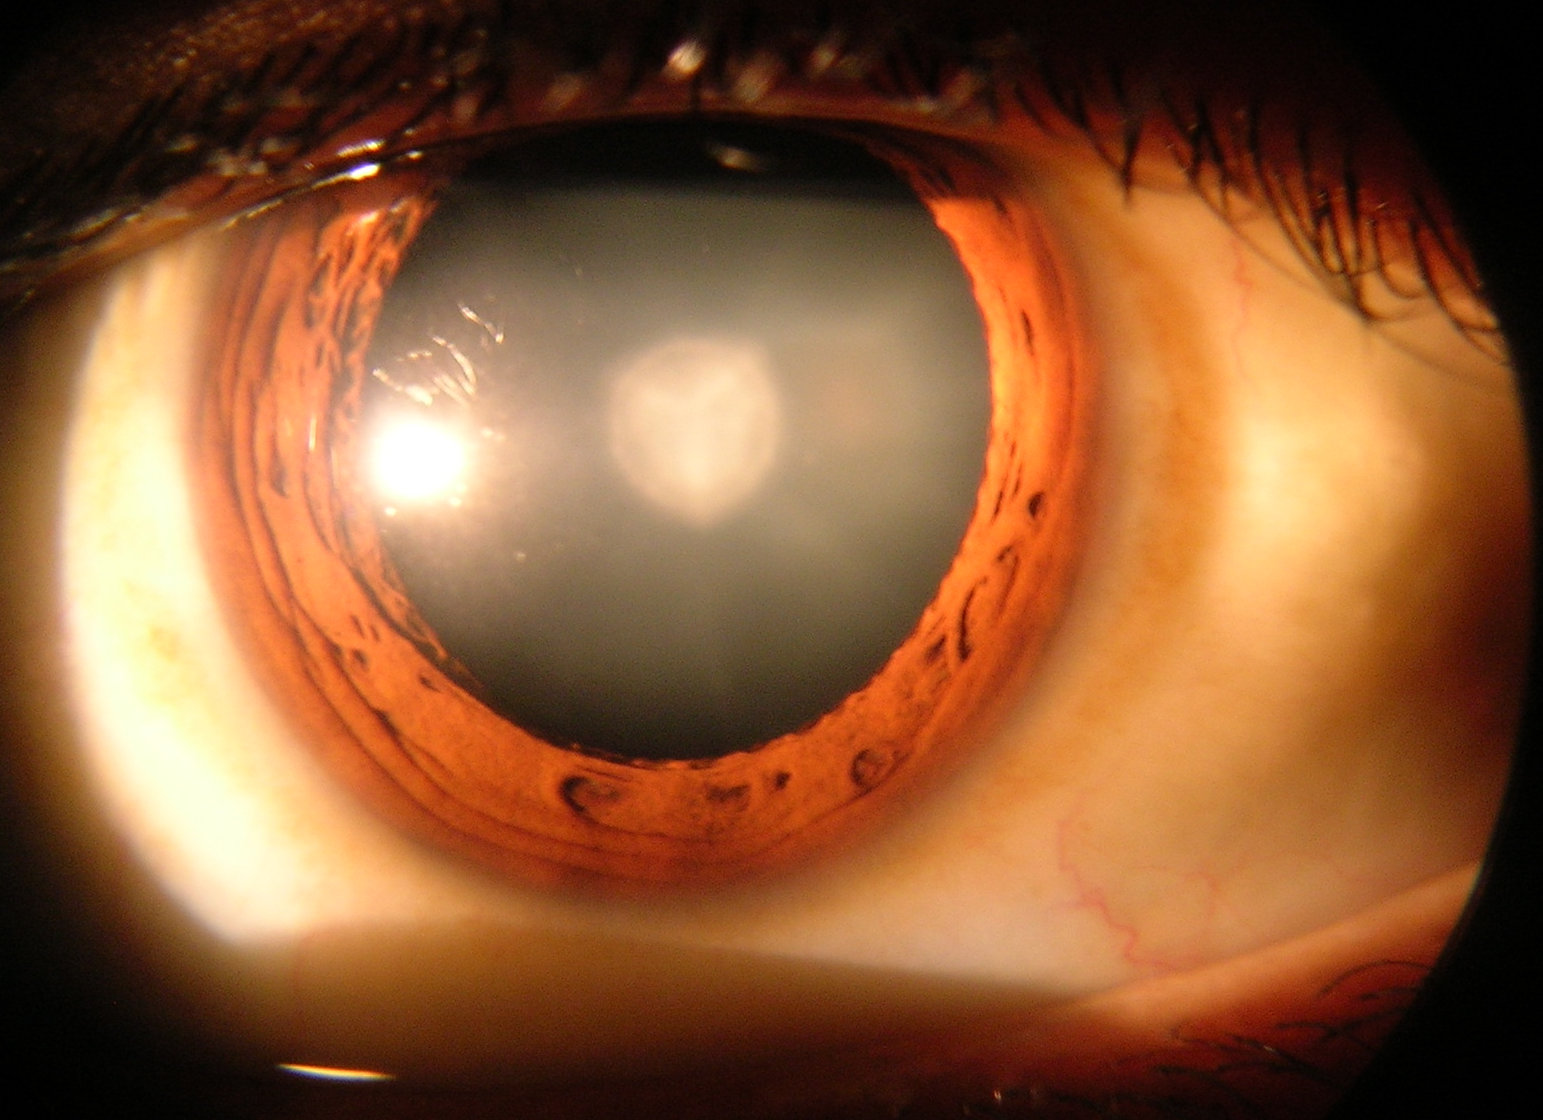 CATARACT: CAUSES, SYMPTOMS & TREATMENTS